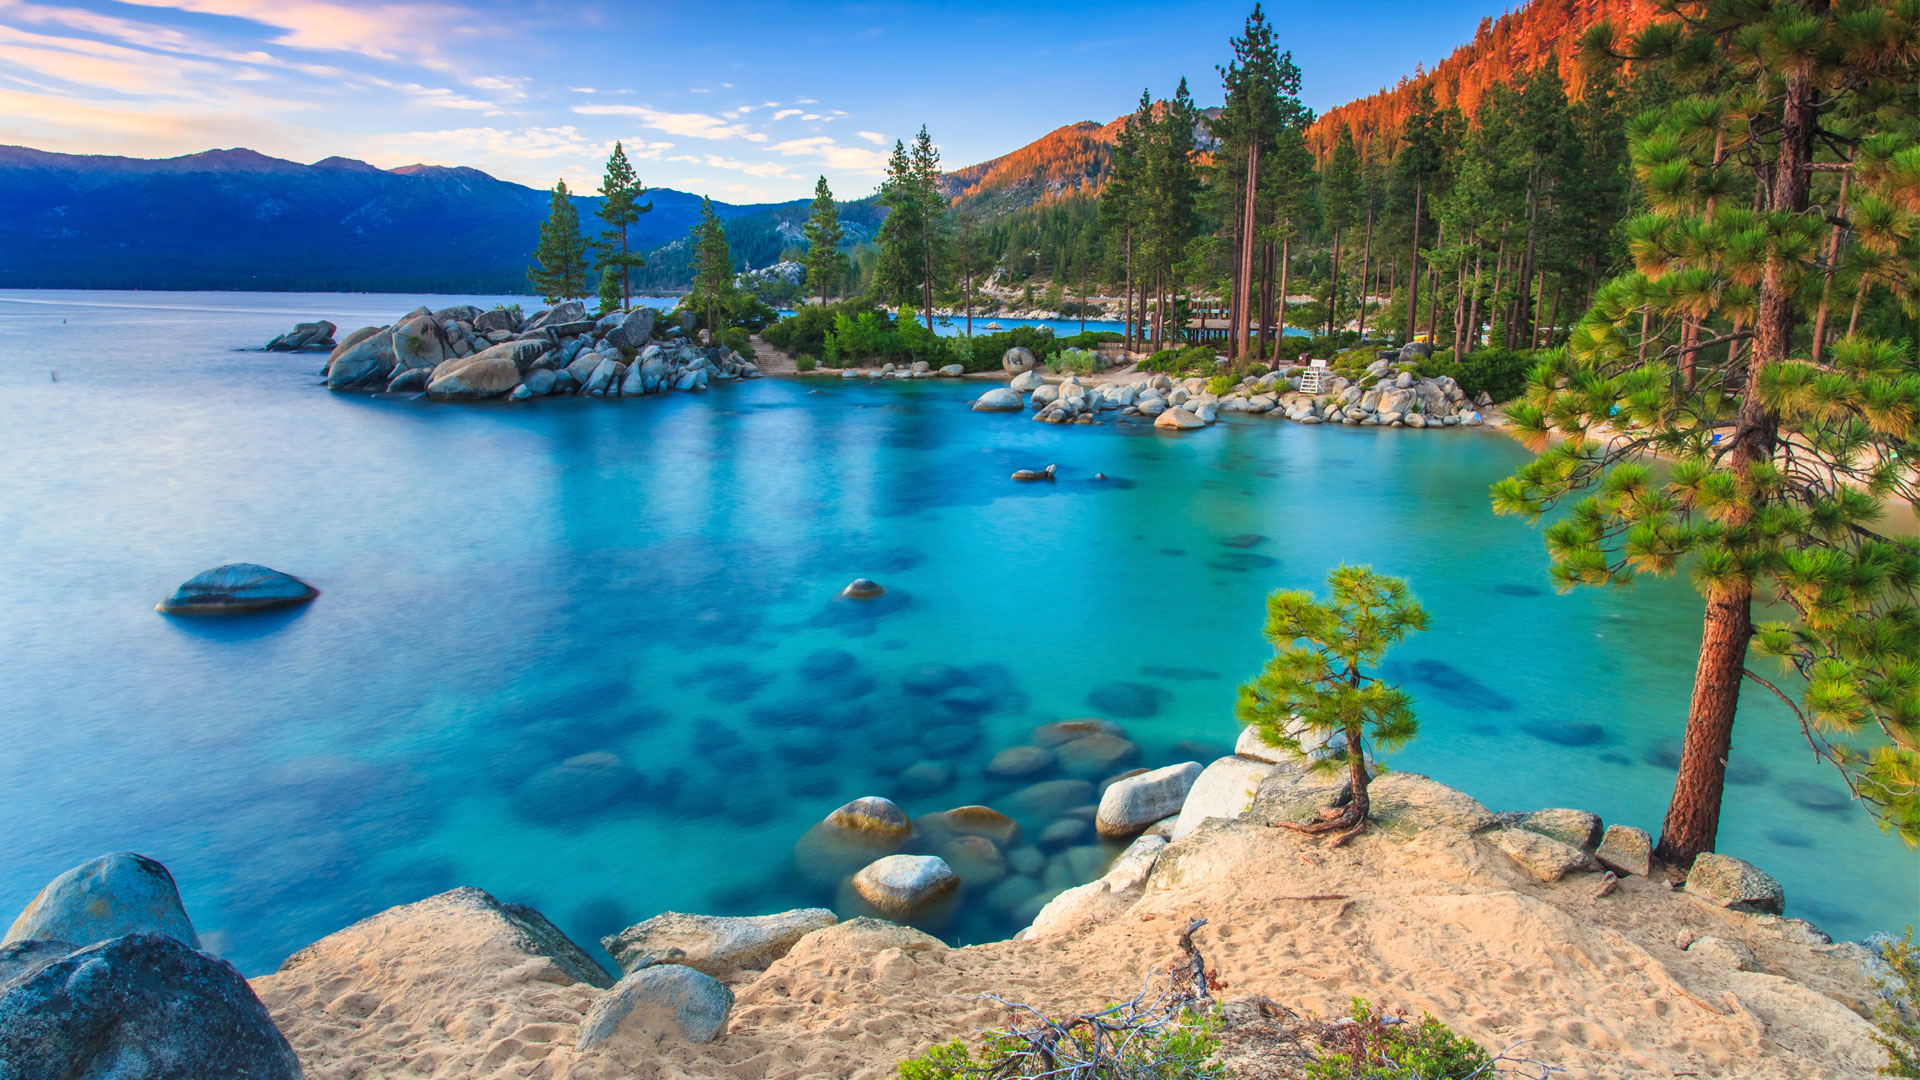 Lake Tahoe kayaking tour - Sunrise kayak adventure